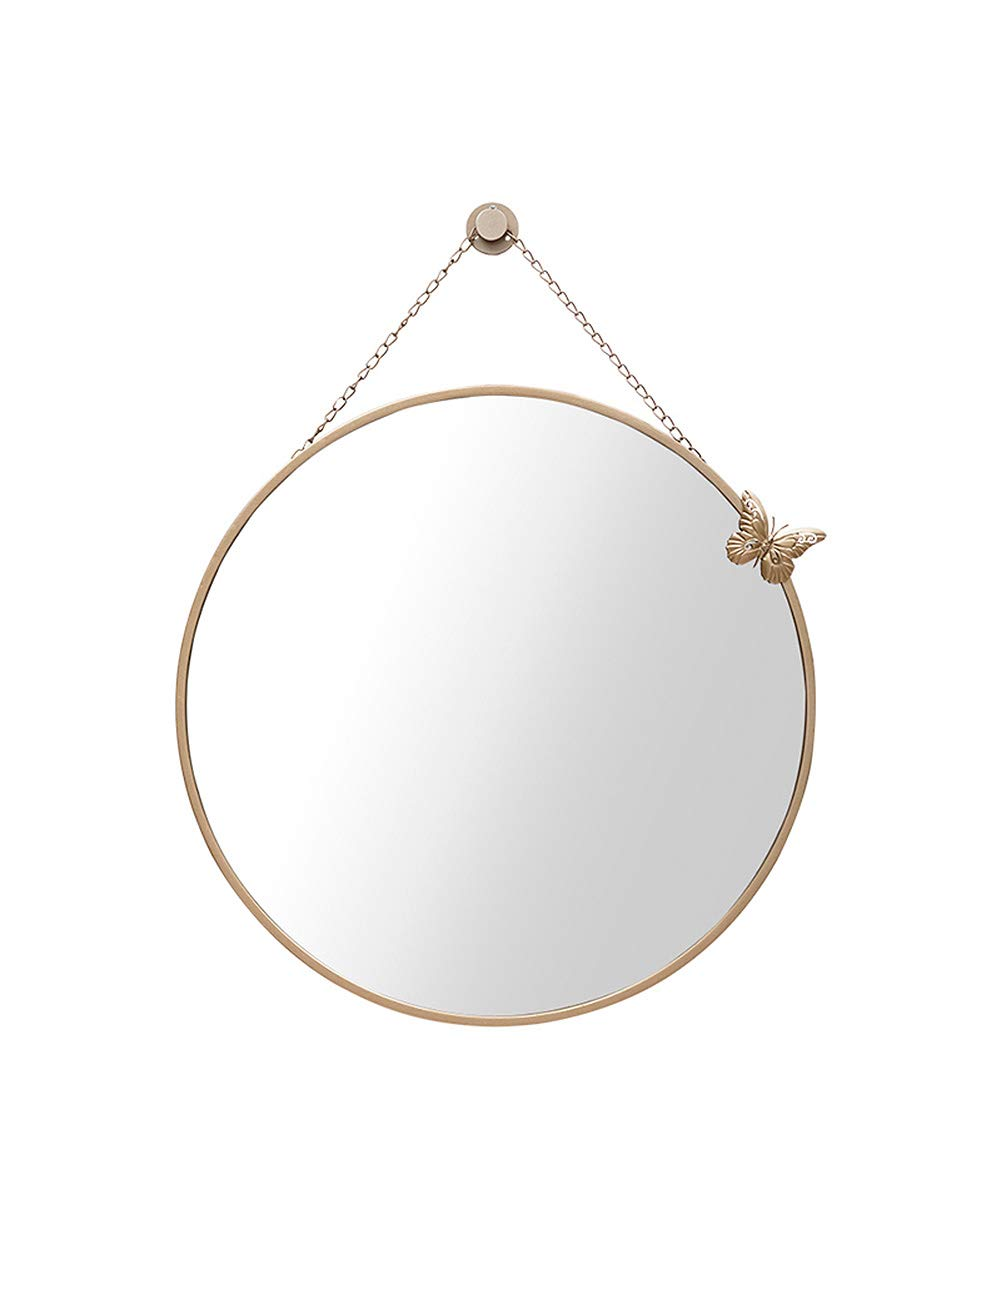 Beige 23.6 IN ZLoader Round Mirror Bathroom Mirror Simple Circular Dressing Mirror Smooth Frame Chain Hanging Mirror (color   Beige 23.6 in)